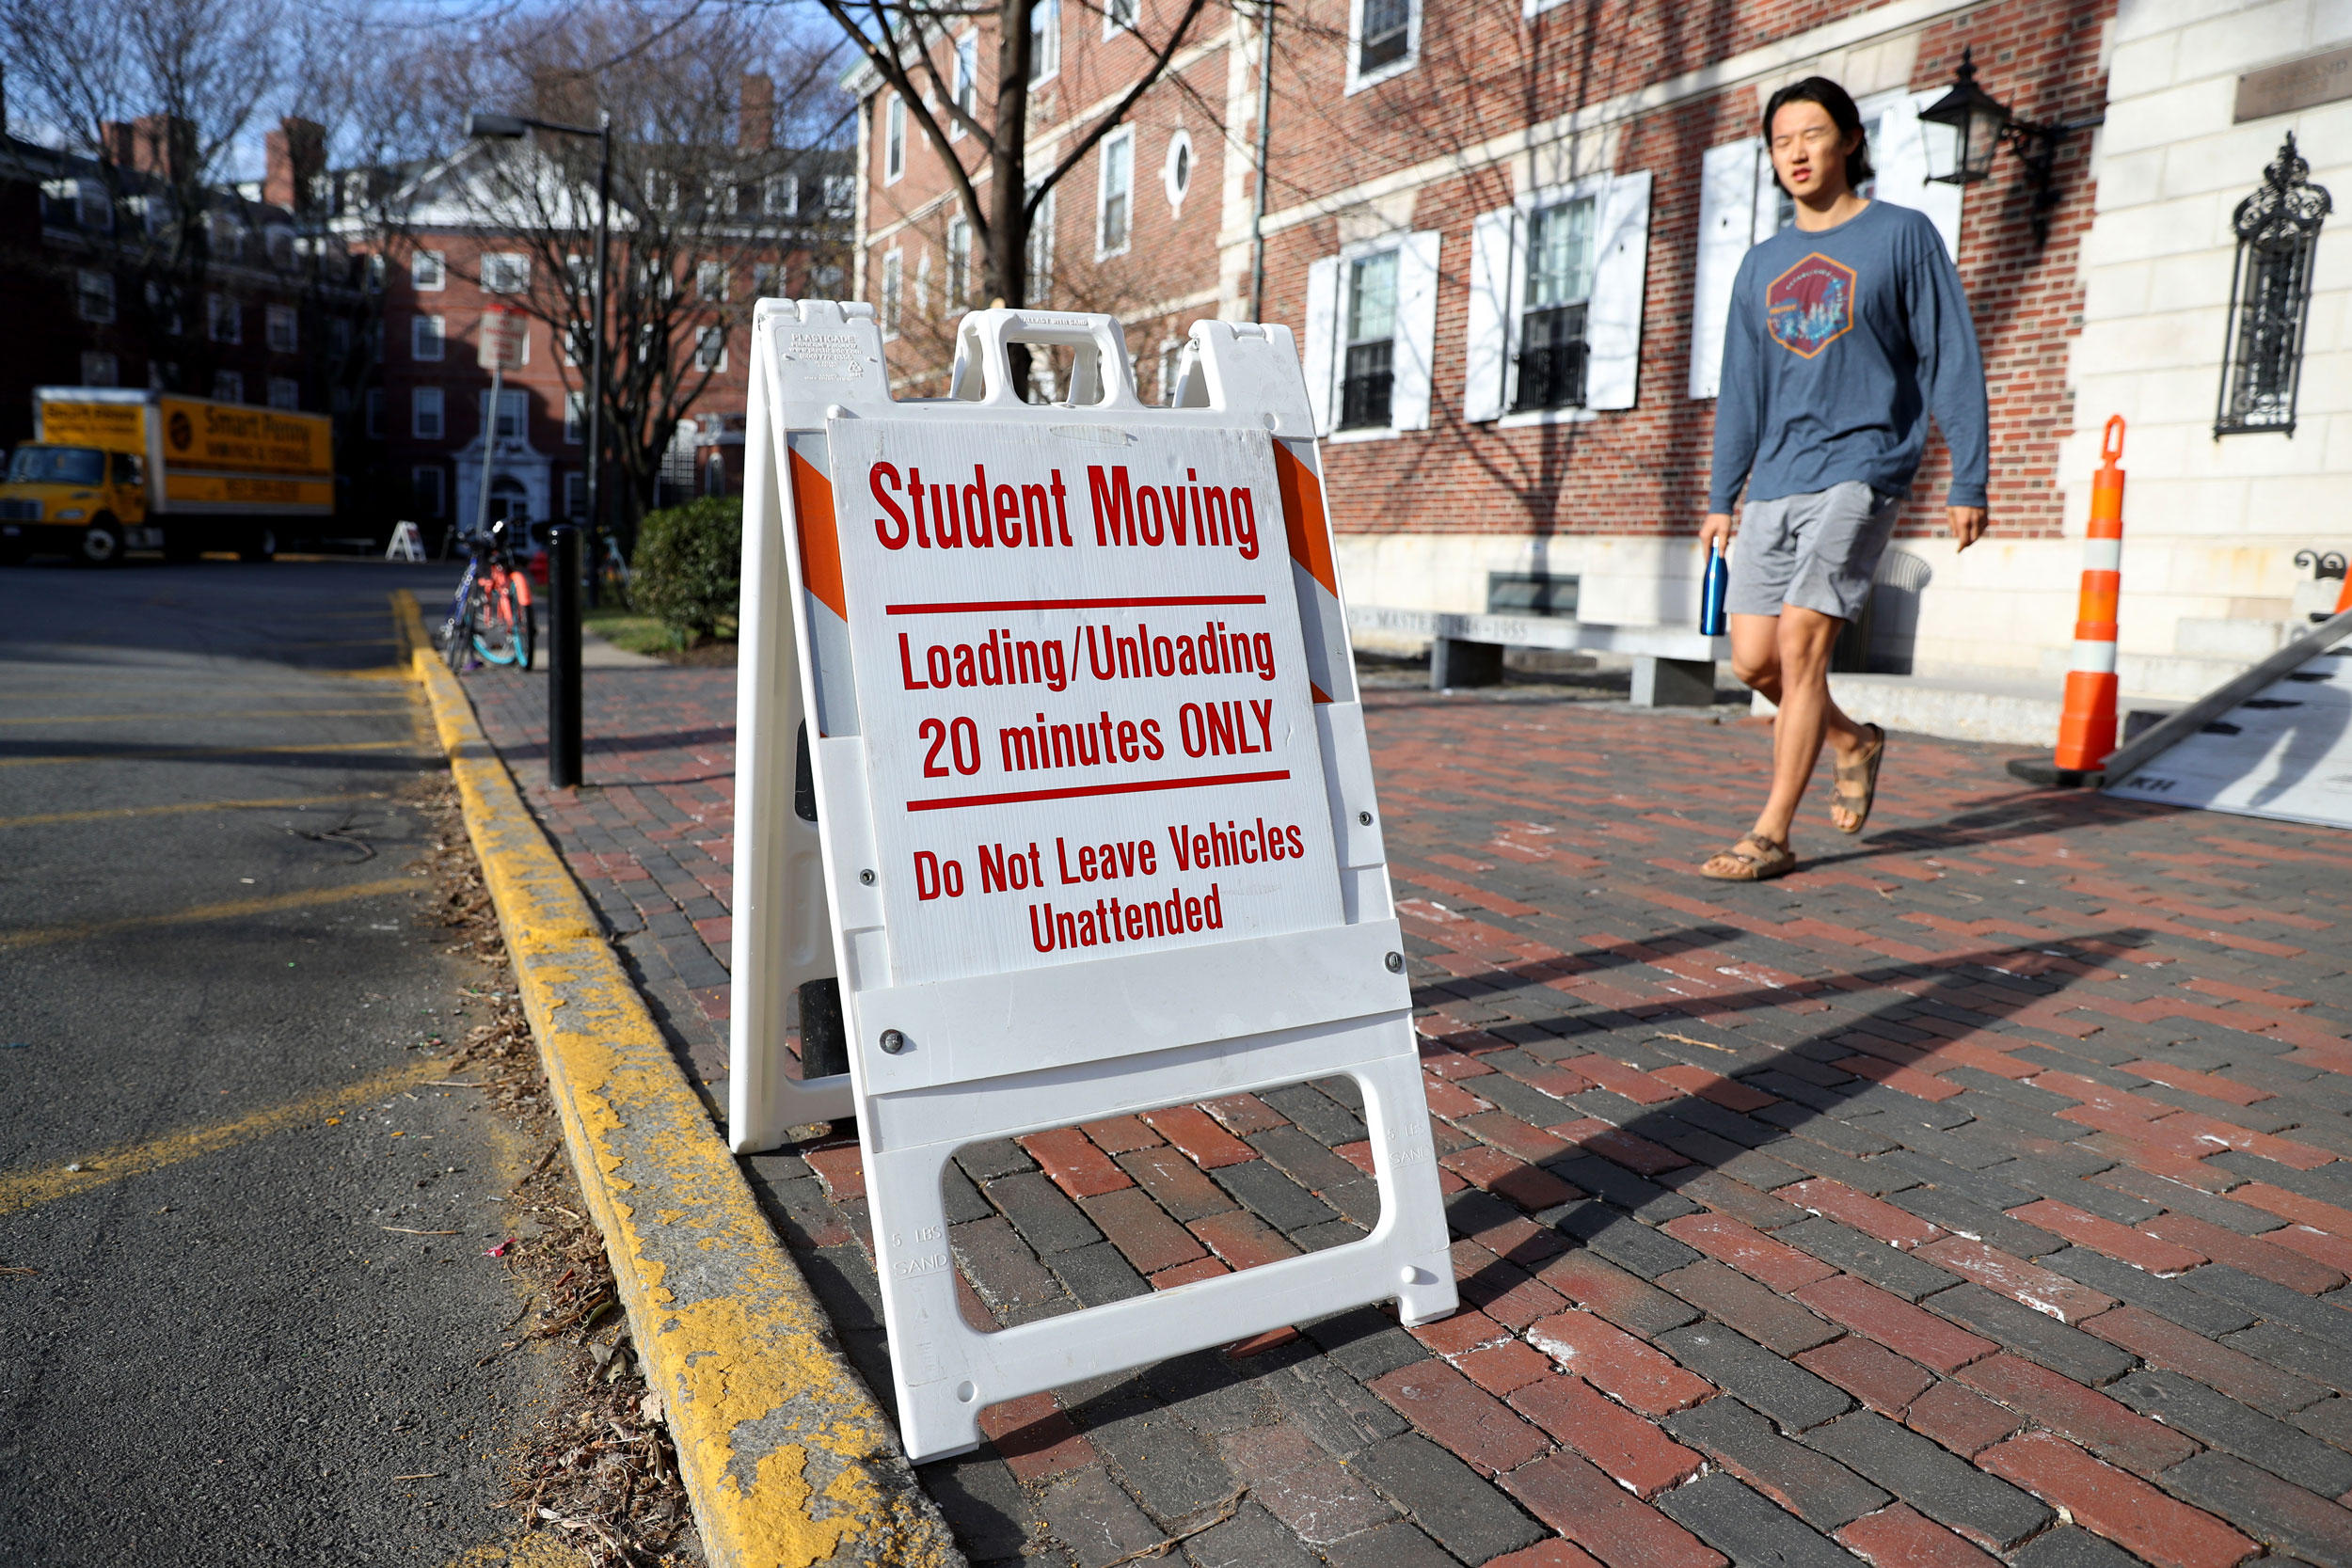 Colleges need to test for Covid-19 frequently to keep campuses open this fall, study says